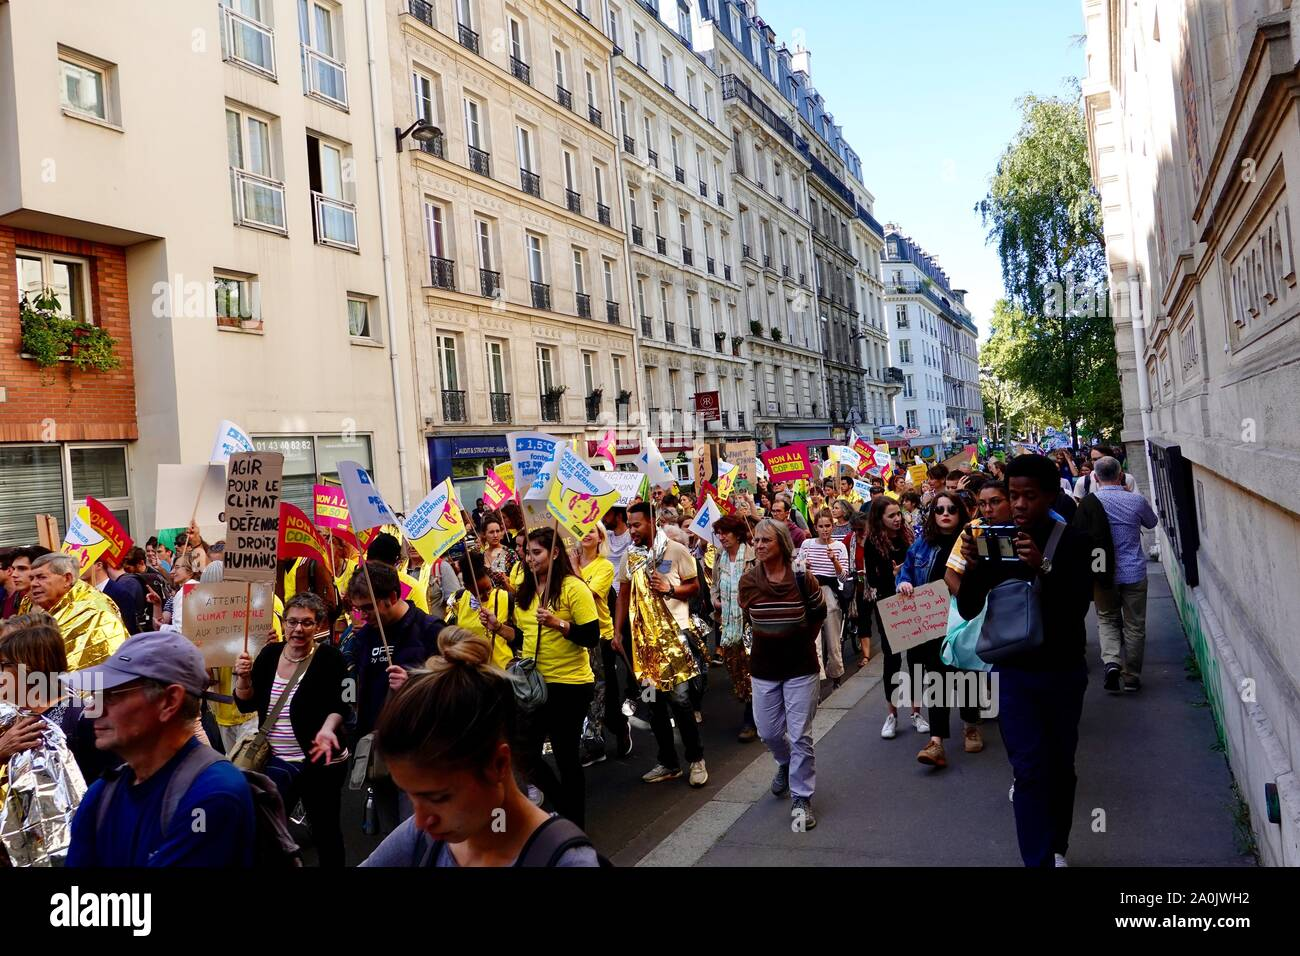 Paris, France. 20 September 2019. Global Climate Week demonstration taking place today in the 12th Arrondissement of Paris, with students, union members, and other worried citizens coming together to express their concern for the planet and the need to take seriously the climate emergency. Stock Photo